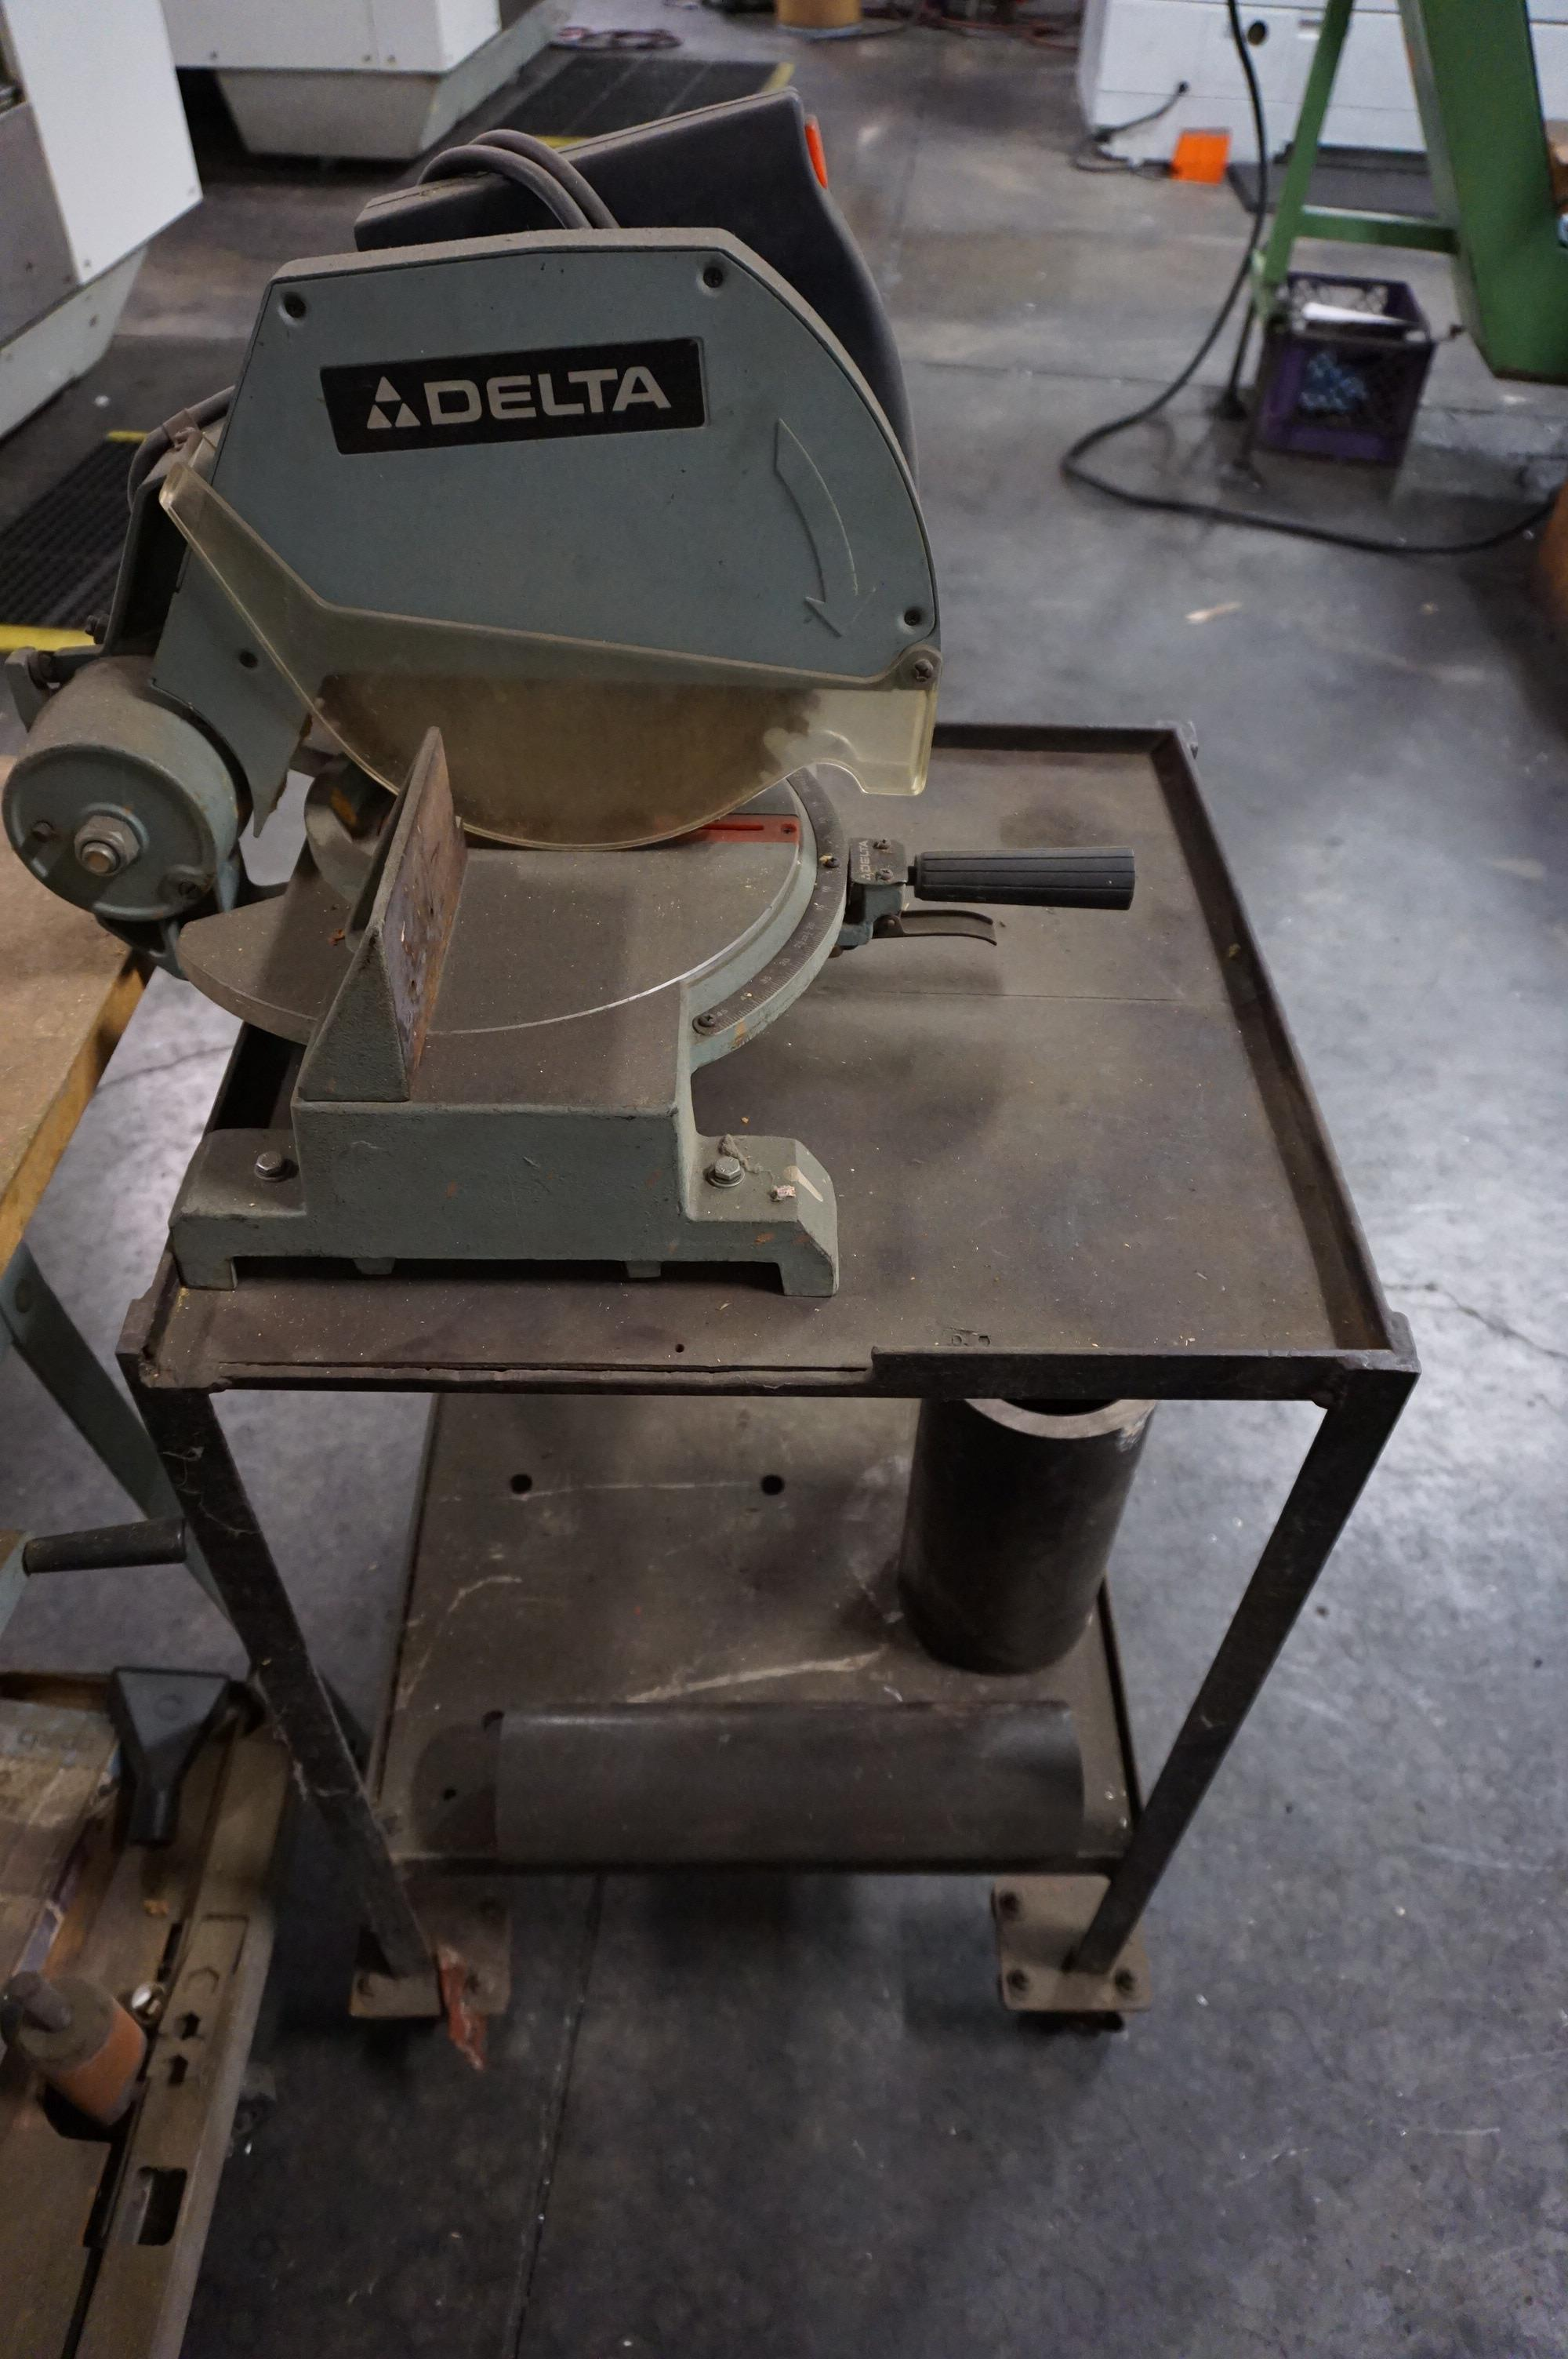 """LOT TO INCLUDE: DELTA MODEL 10 RADIAL ARM TABLE SAW, DELTA 10"""" MITER SAW MODEL 34-080 - Image 5 of 6"""